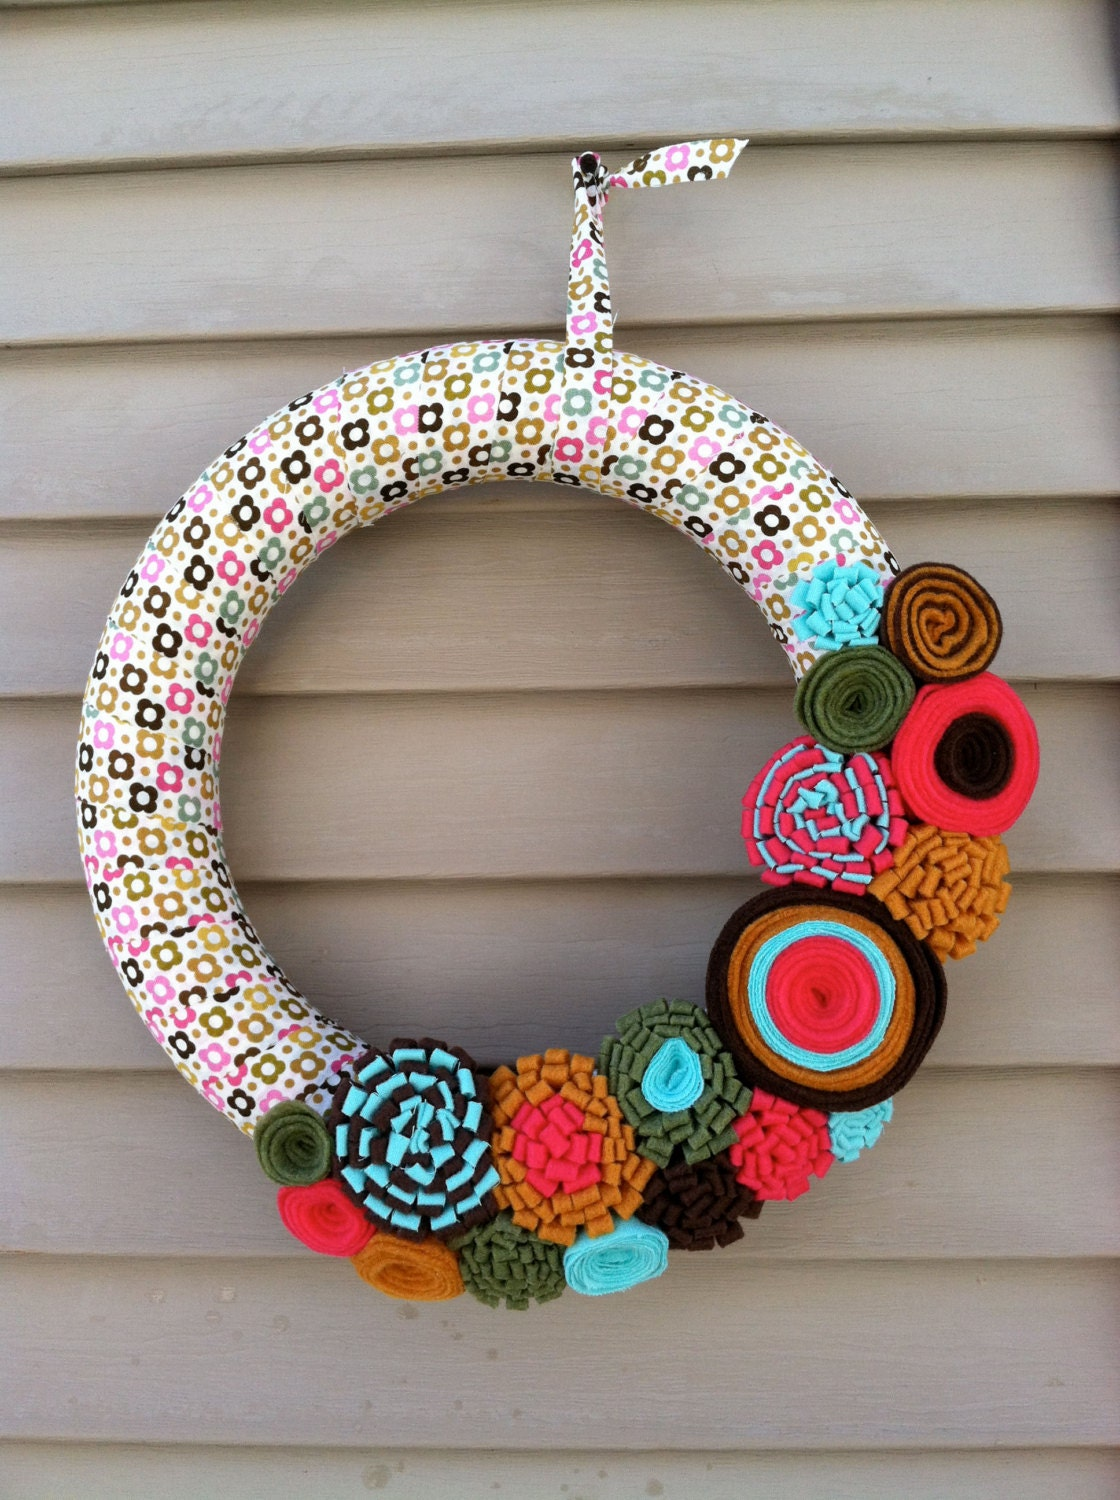 Spring Wreath - Modern Flower Patterned Fabric Decorated with Felt Flowers. Easter Wreath - Flower Wreath - Fabric Wreath